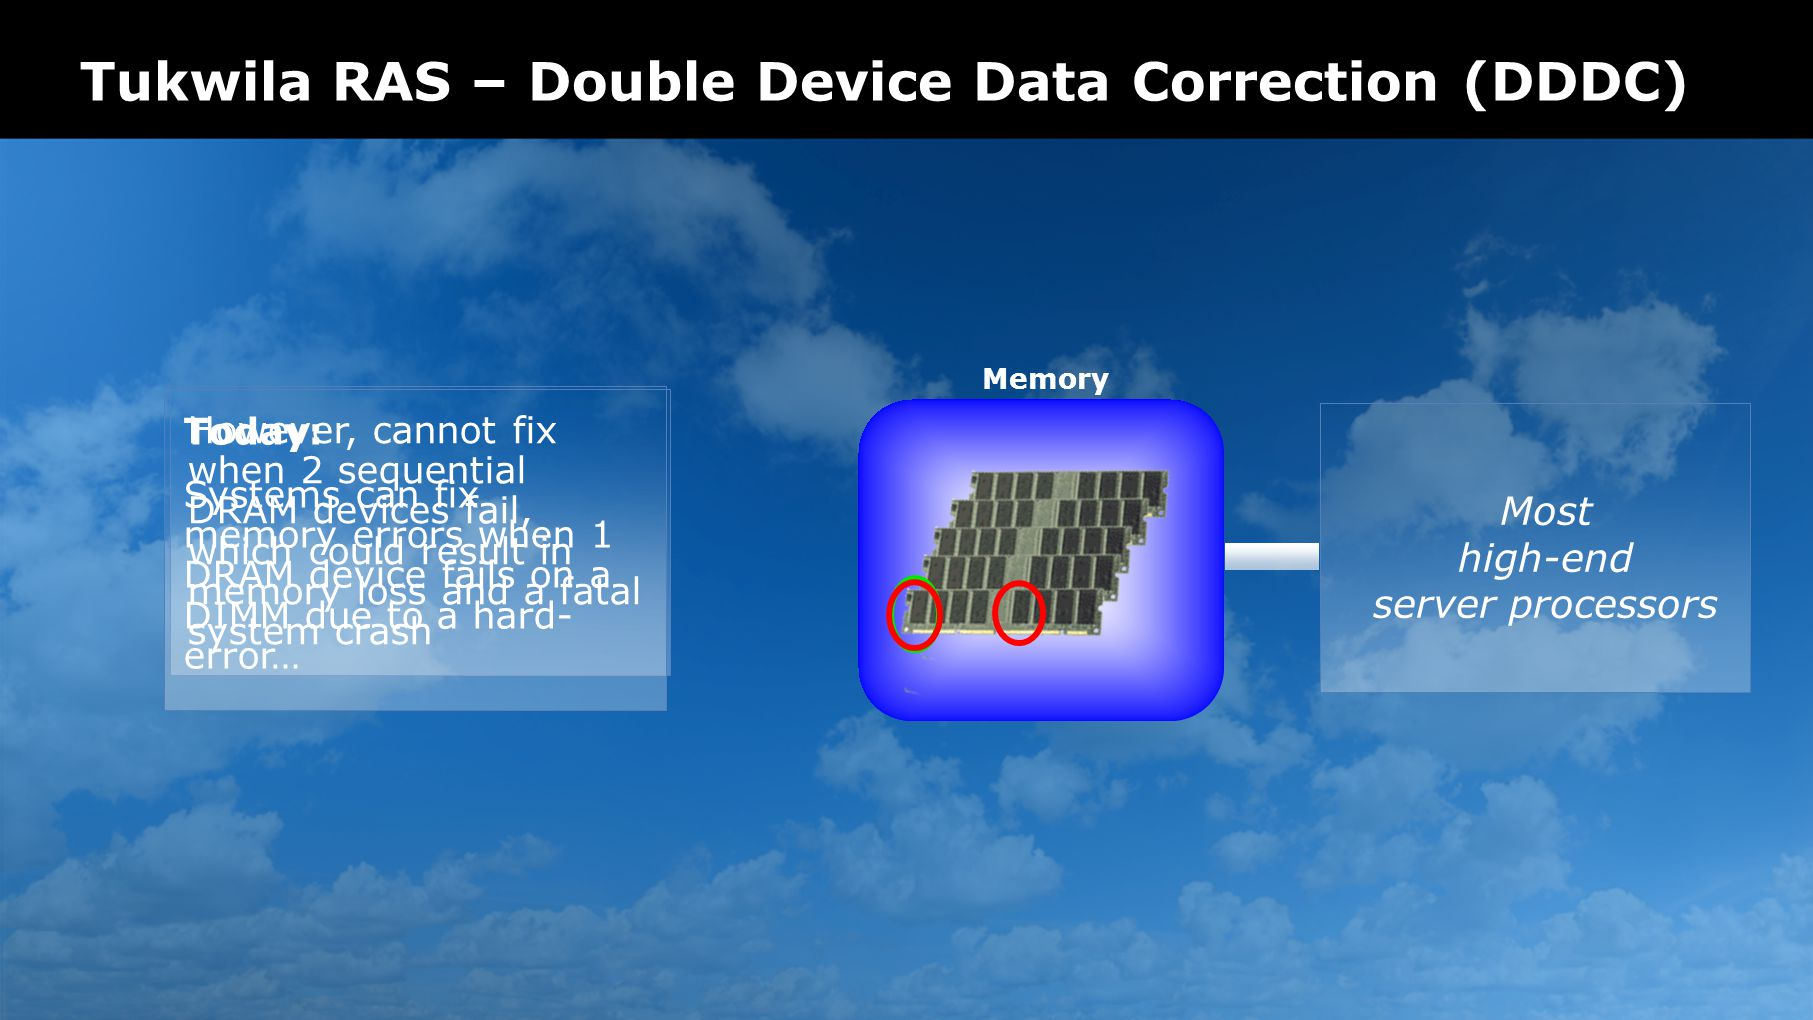 Tukwila RAS – Double Device Data Correction (DDDC) Memory Most high-end server processors However, cannot fix when 2 sequential DRAM devices fail, which could result in memory loss and a fatal system crash Today: Systems can fix memory errors when 1 DRAM device fails on a DIMM due to a hard- error…